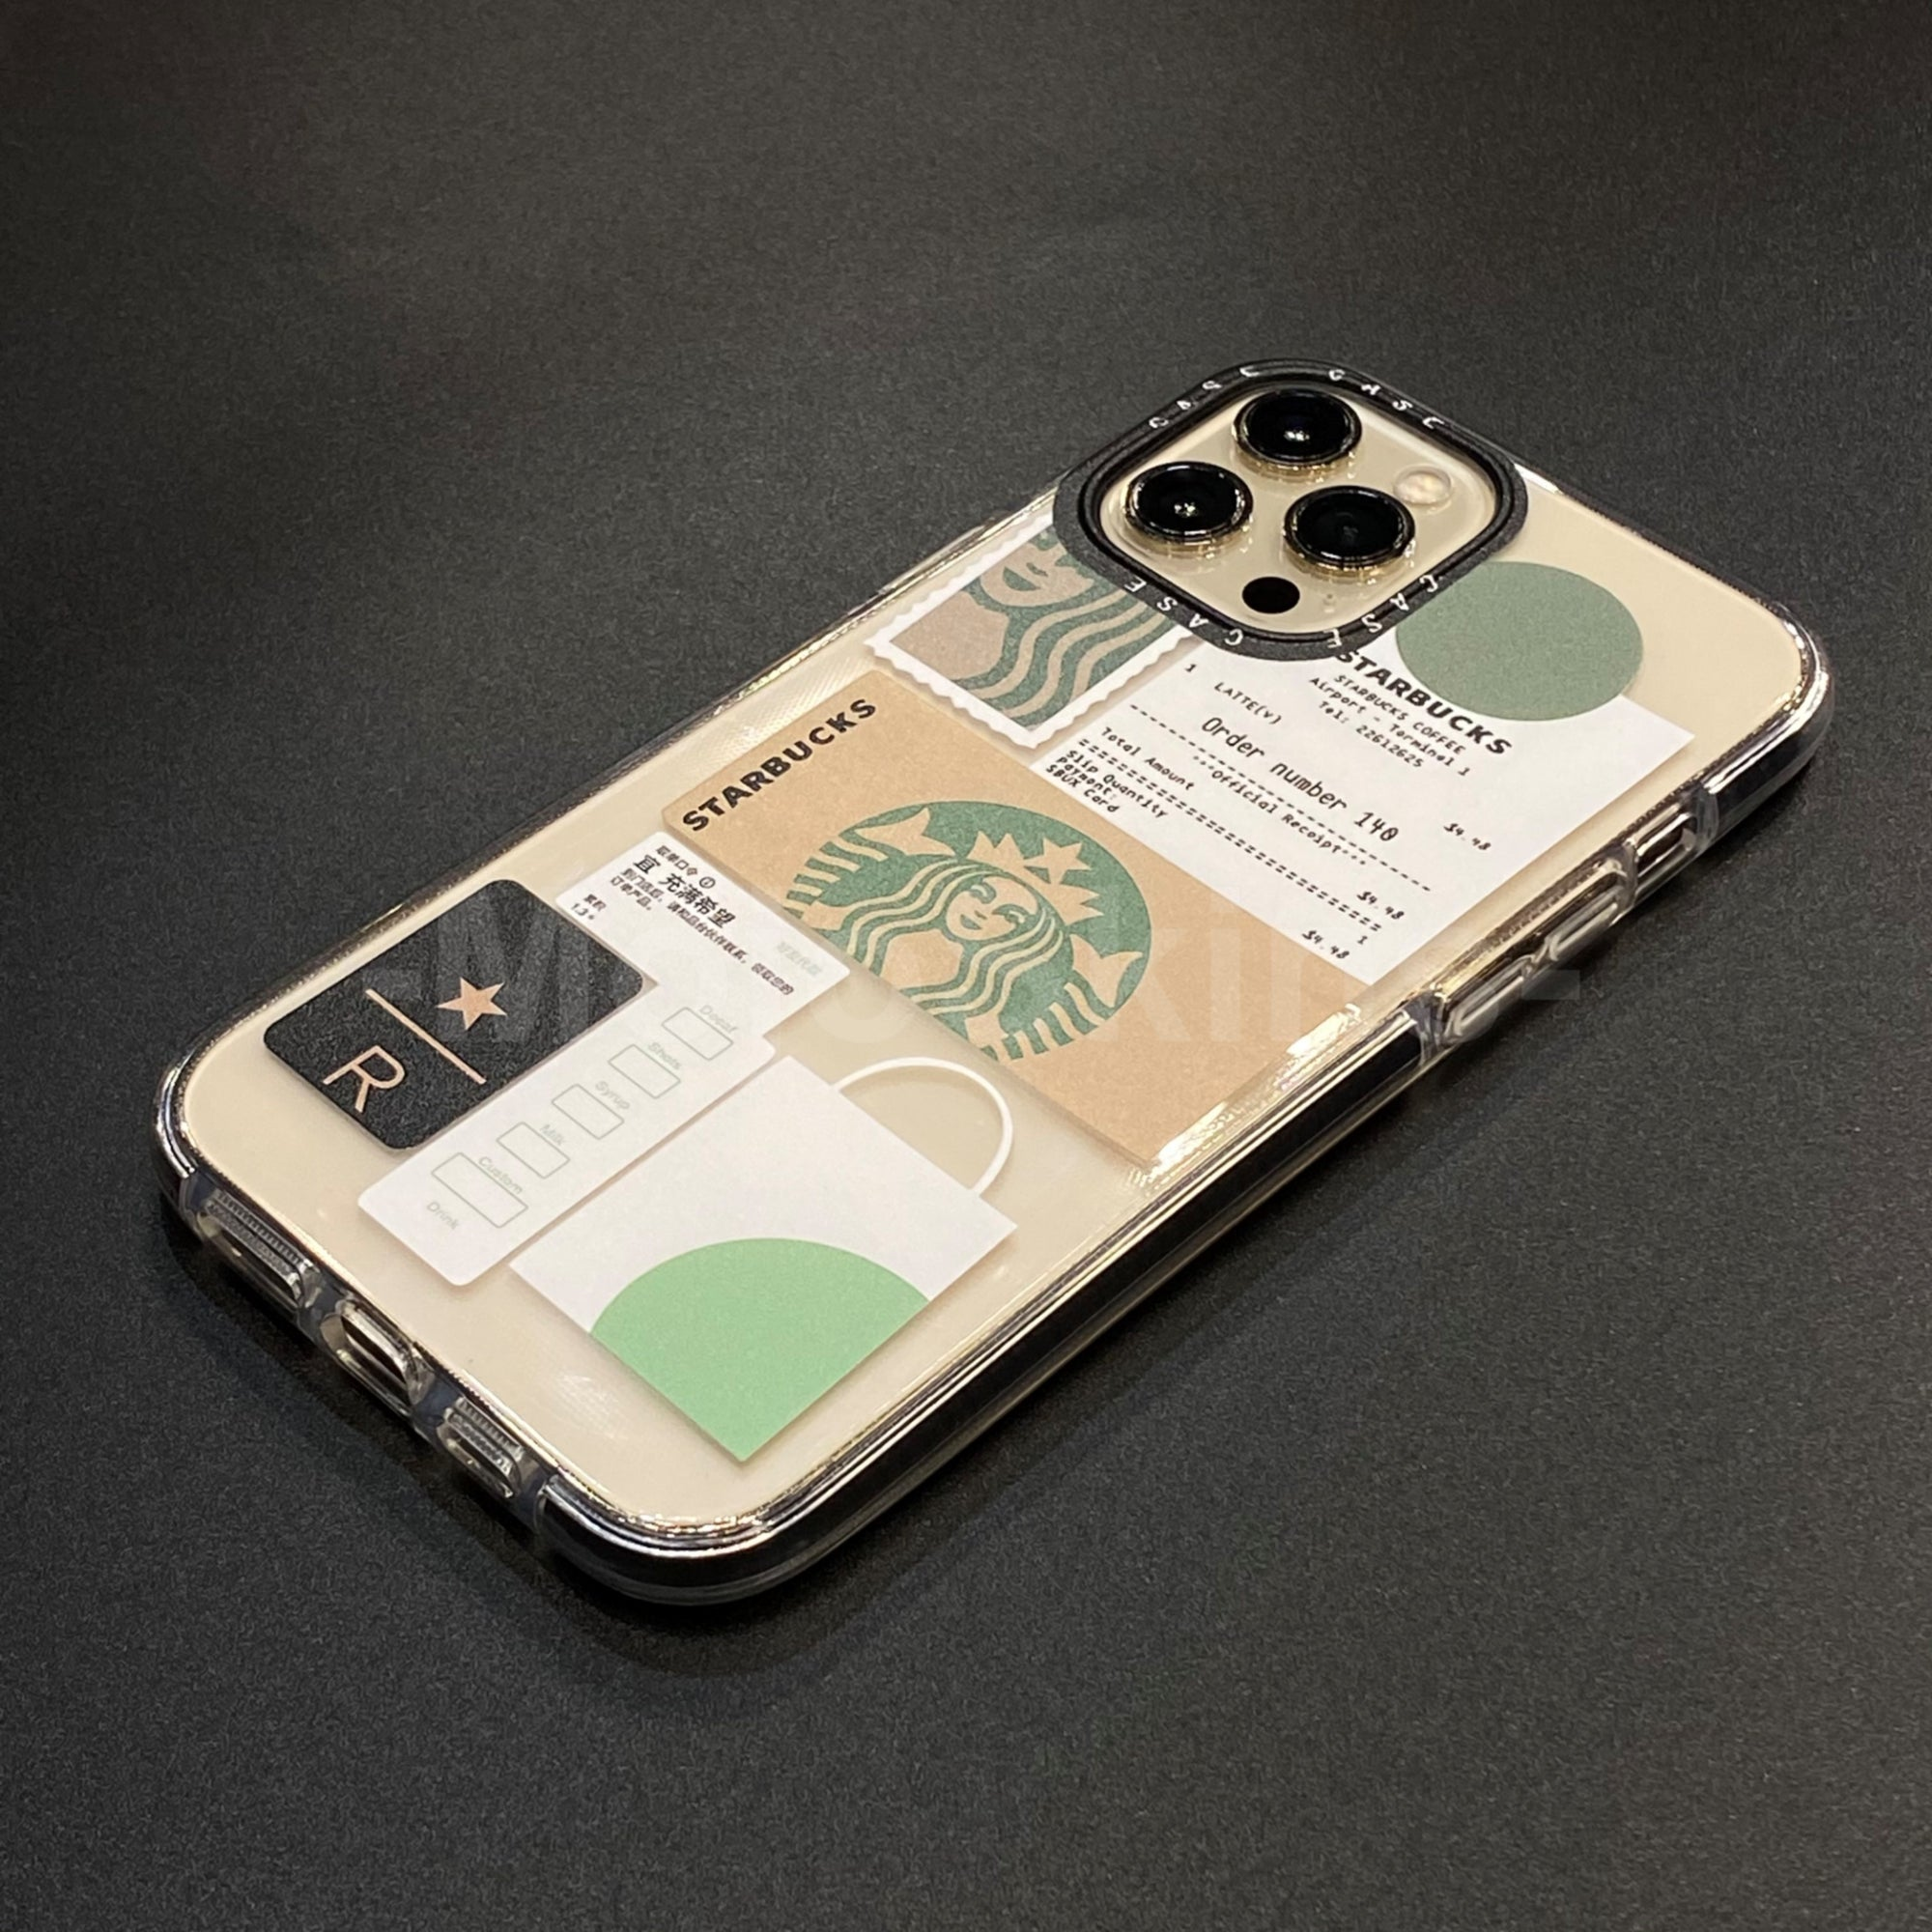 Iphone Starbucks Casing (Impact Protection)